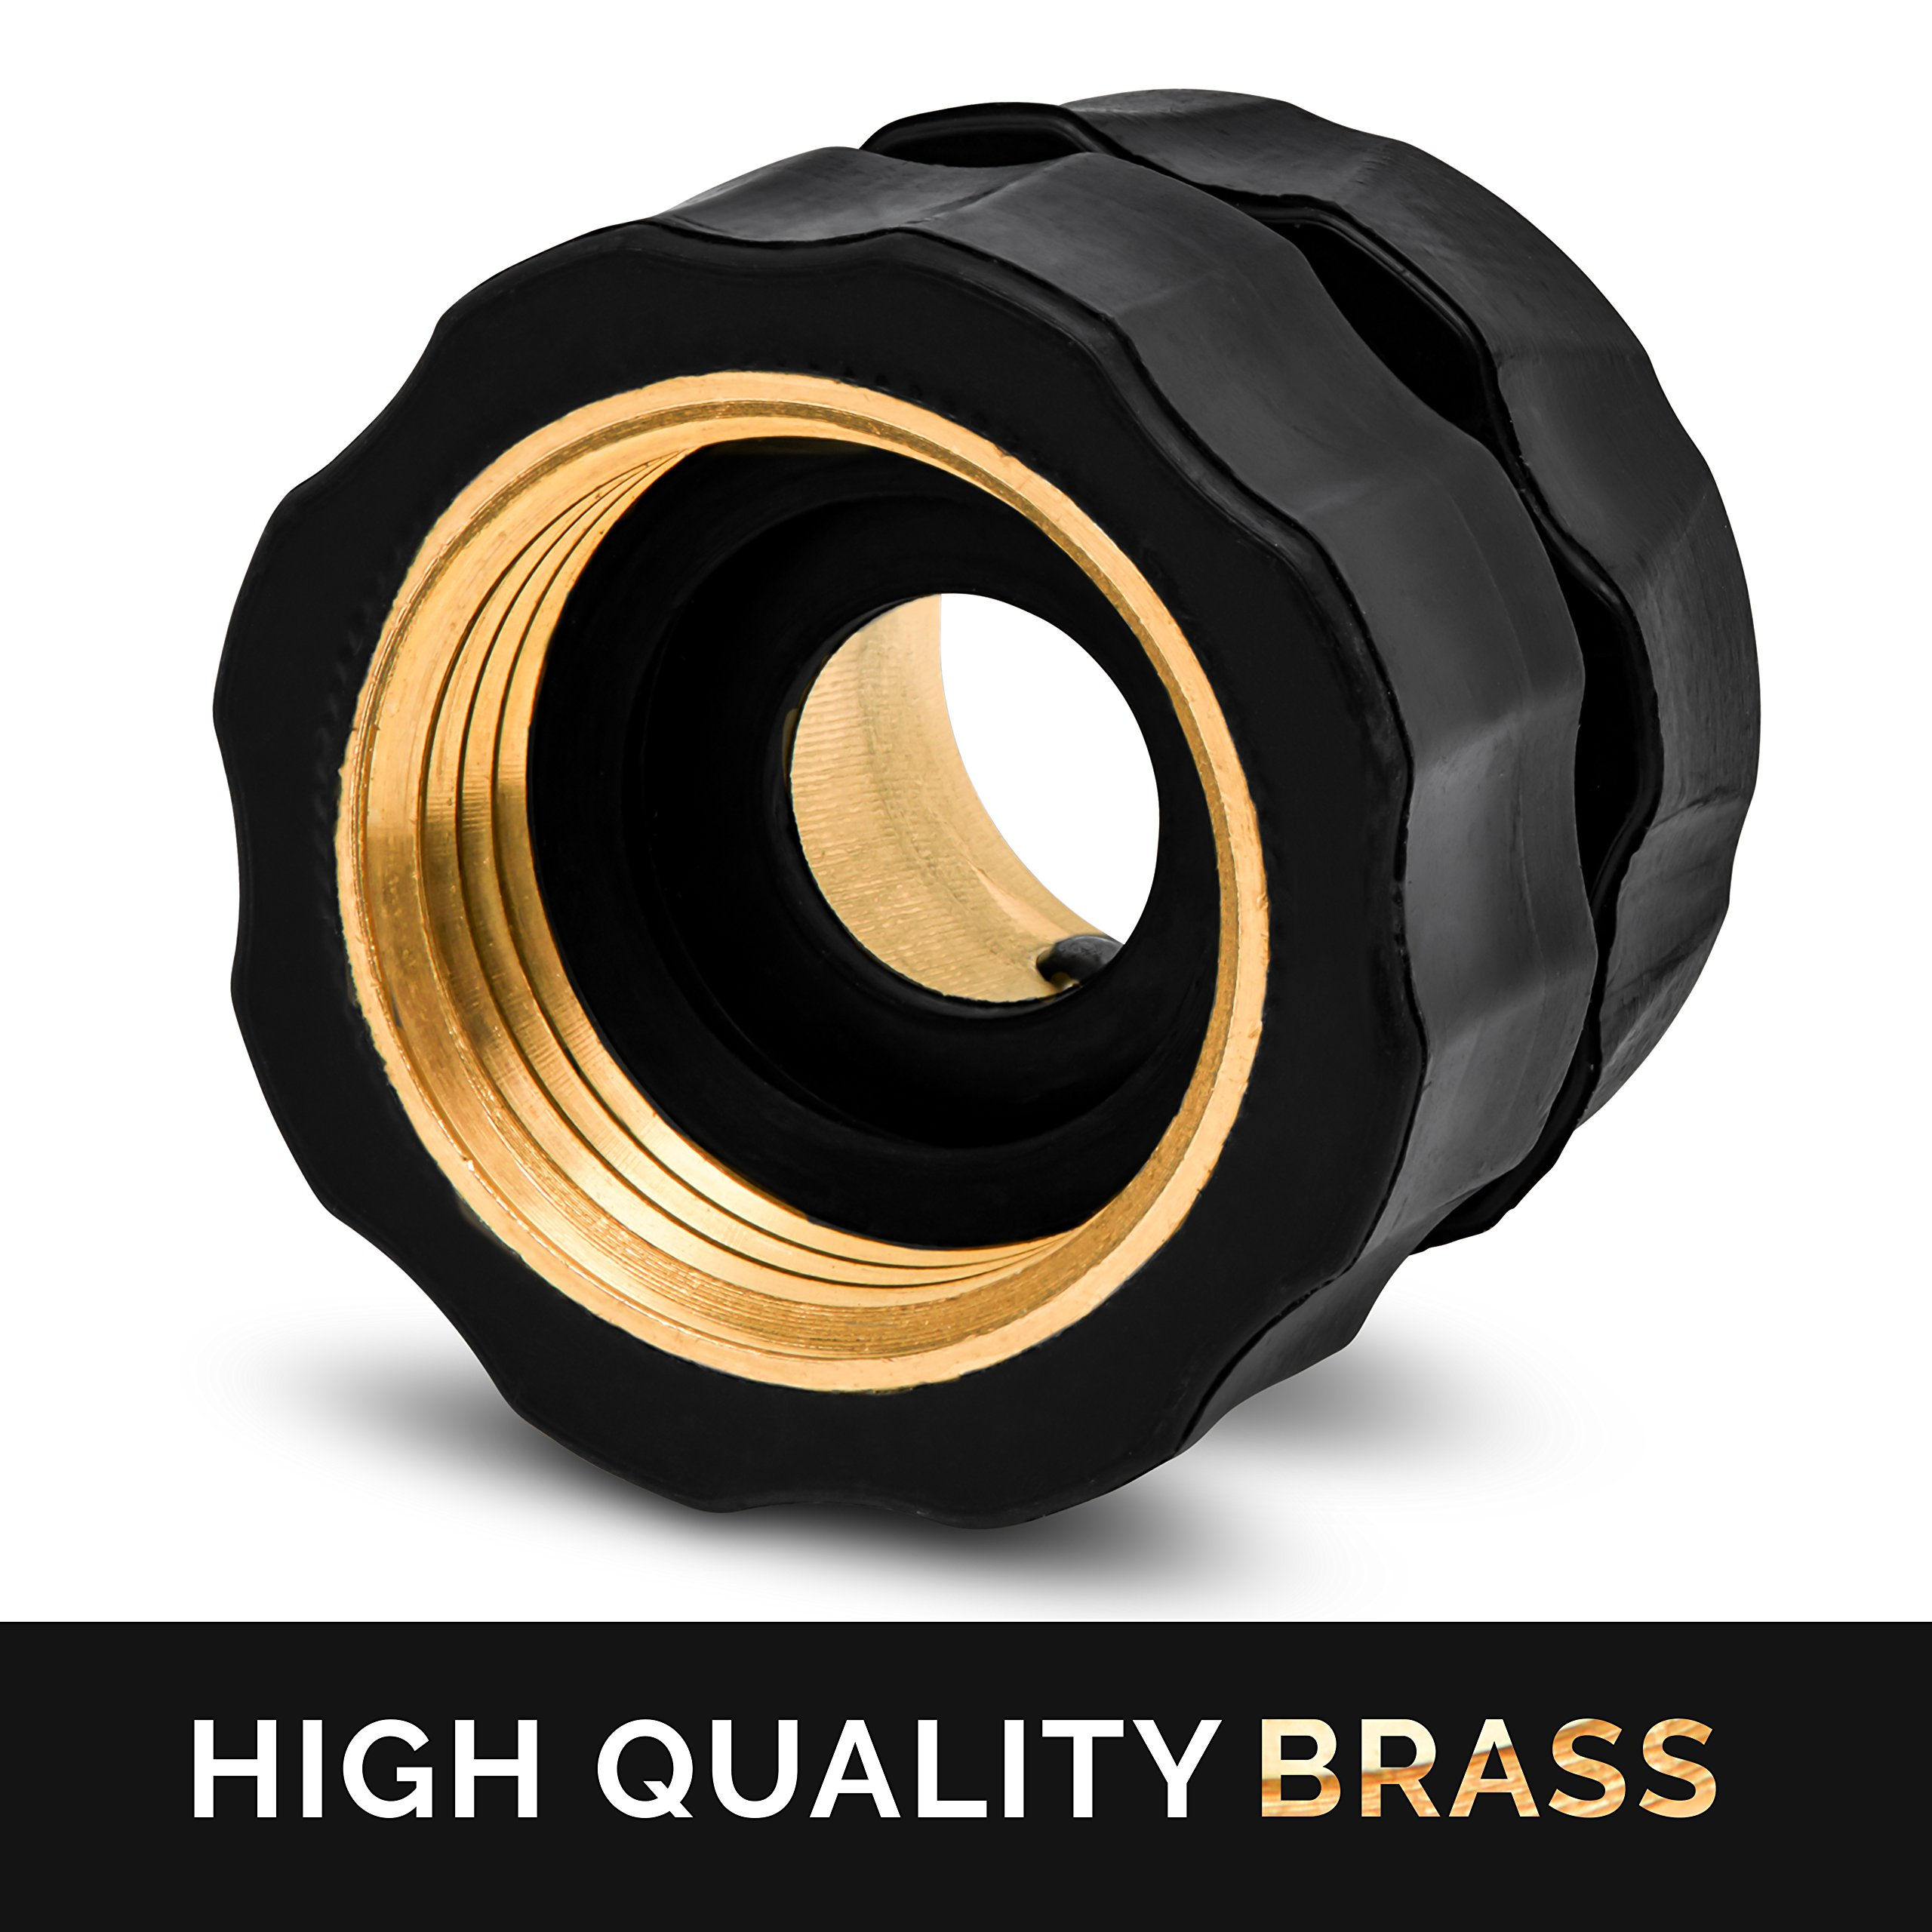 Morvat Brass Quick Hose Connector | Easily Add Attachments to Garden Hose | Great for Gardening, Washing, Sprayers, Nozzles, Sprinkler or Watering Tools | Pack of 6 by Morvat (Image #3)